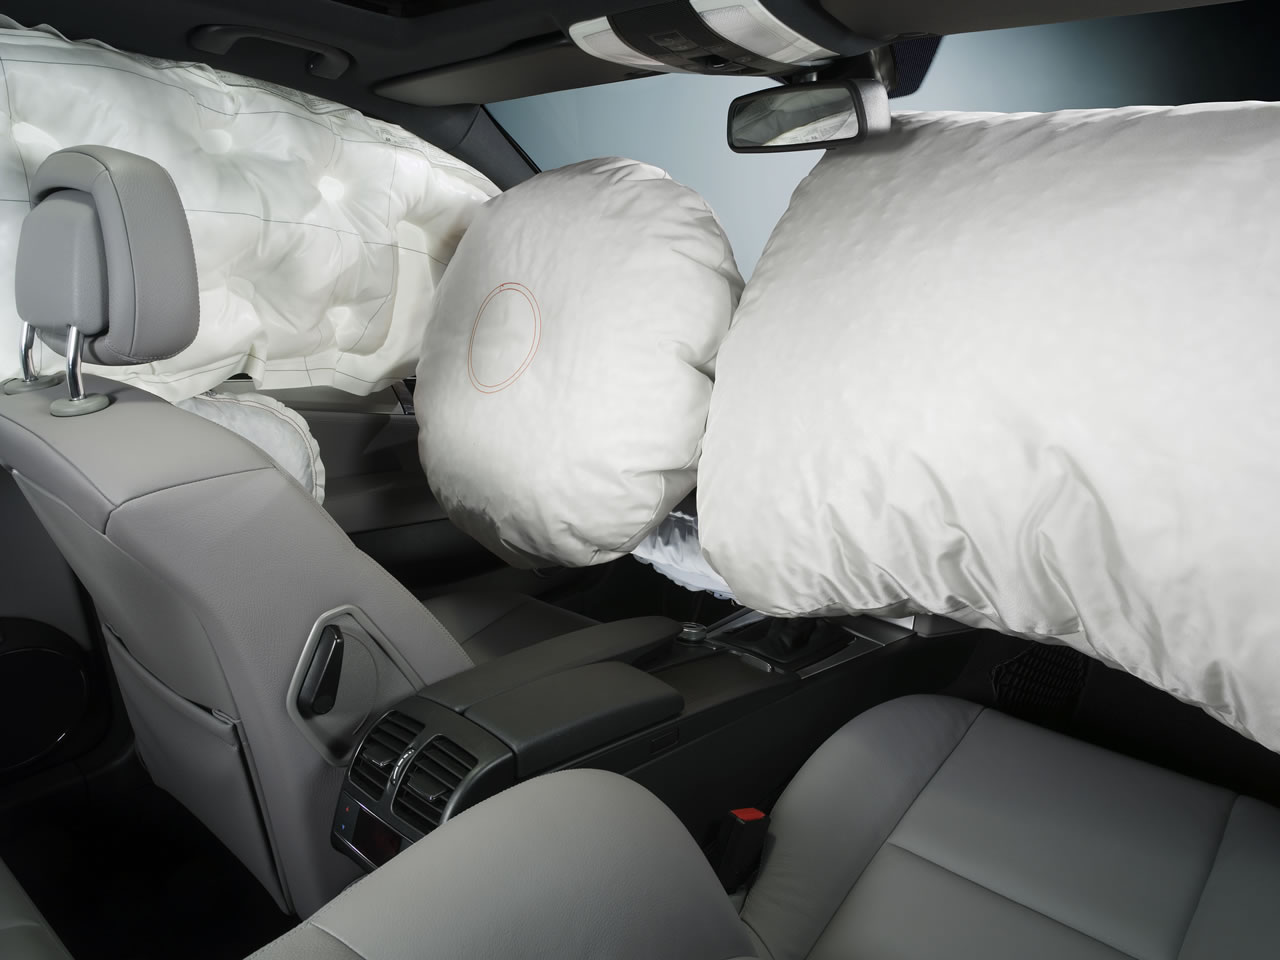 Image result for Malfunctioning Airbags